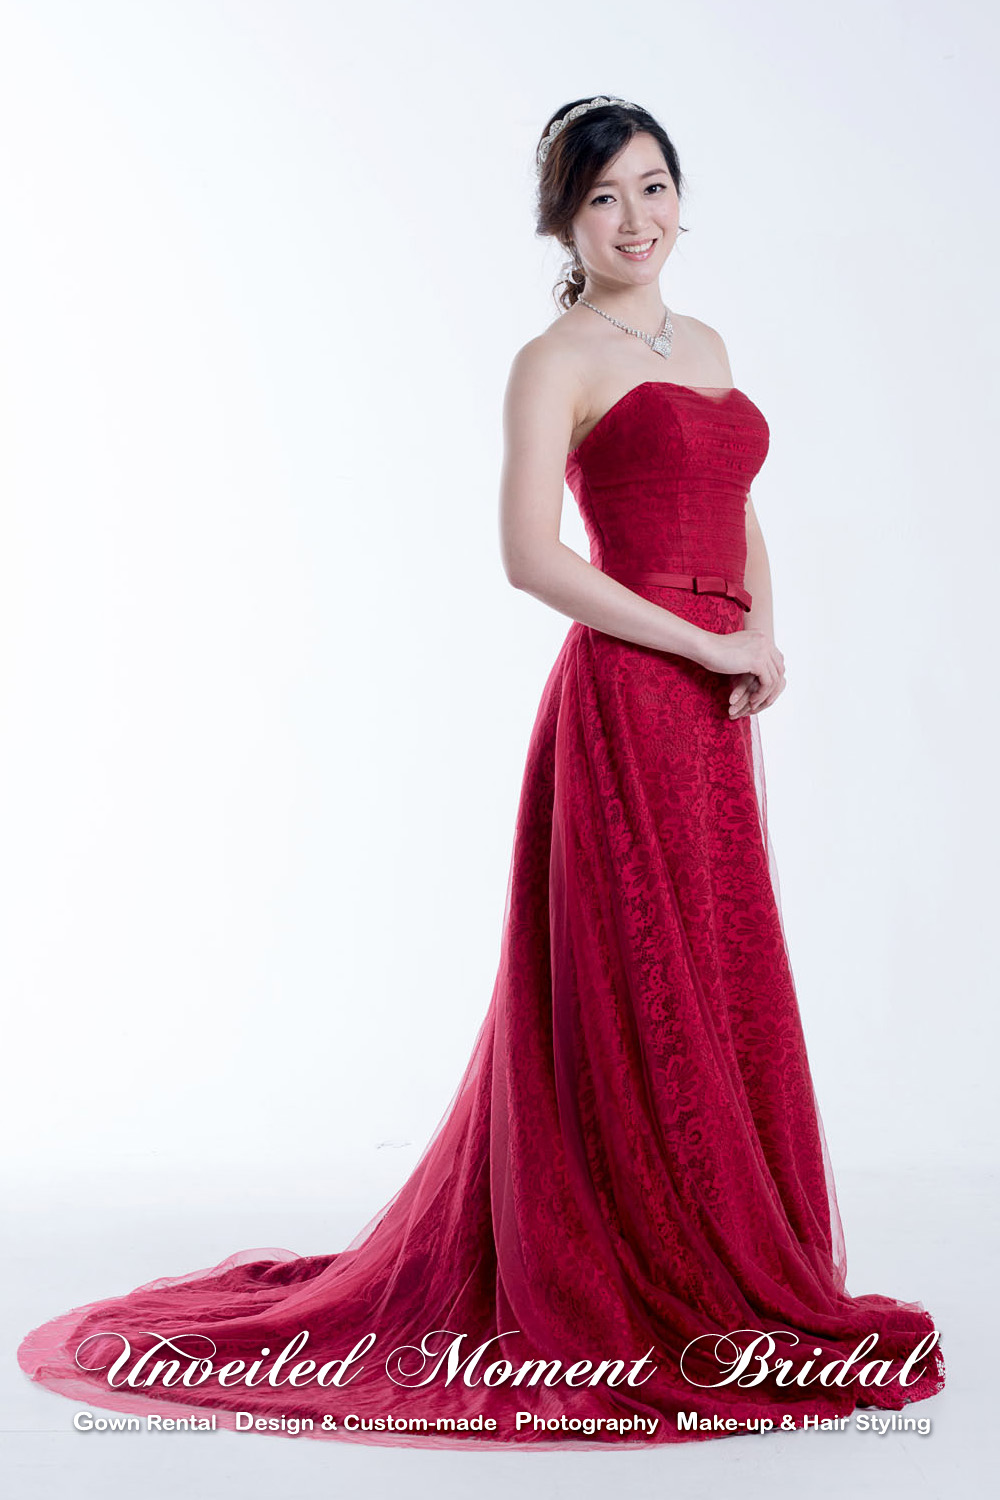 Strapless, sweetheart neckline tulle evening gown with a lace skirt underlay and a sweep train. Colour: Royal Red 無肩帶, 心形領口, 内層特色蕾絲花布, 外層薄紗, 拖尾酒紅色婚紗